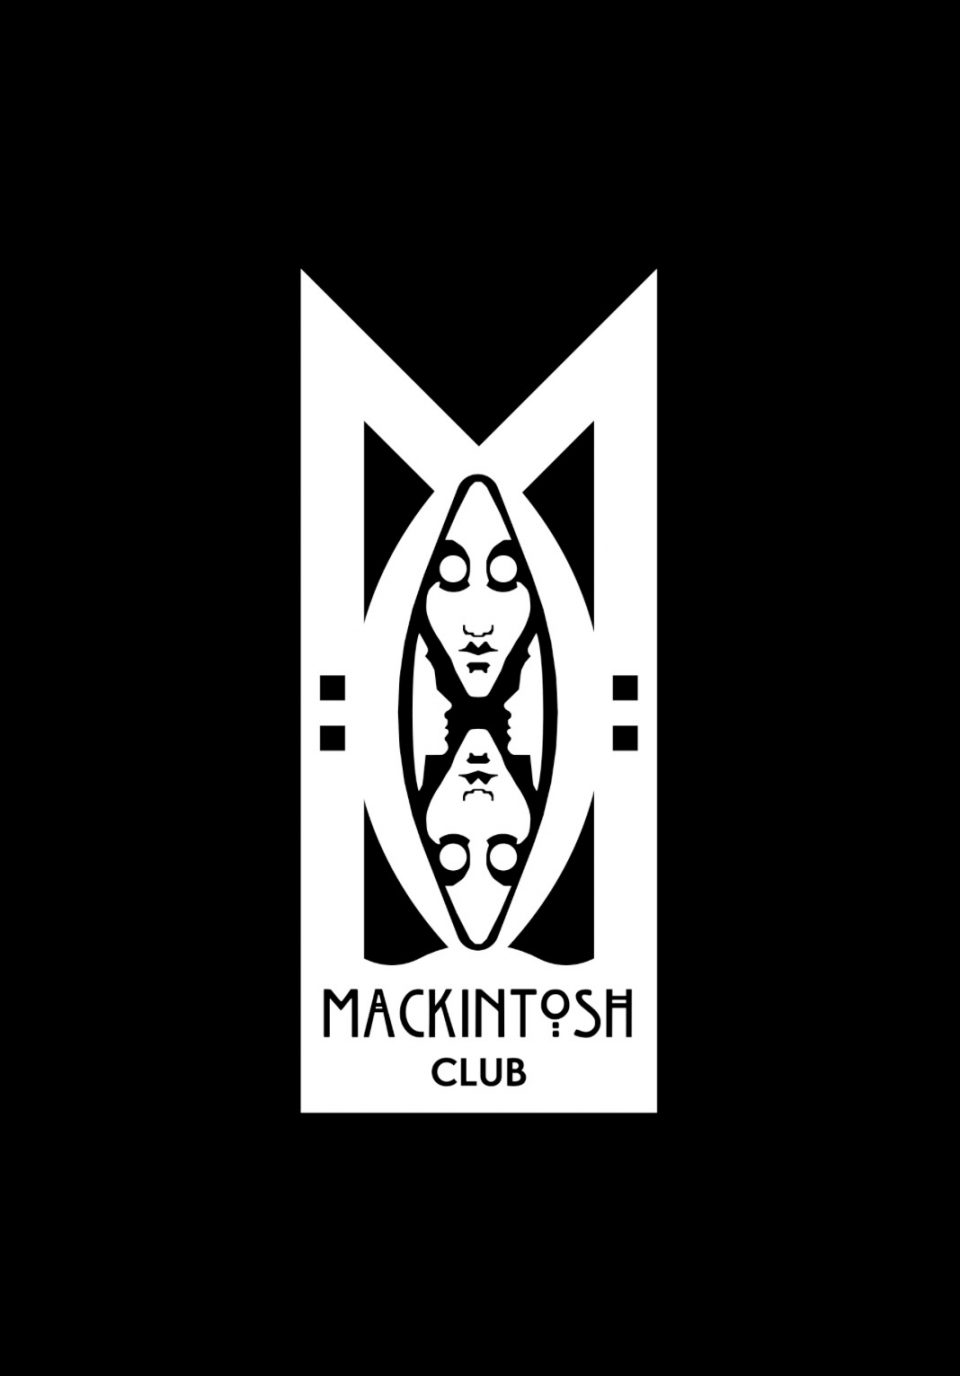 MacKintosh Club logo